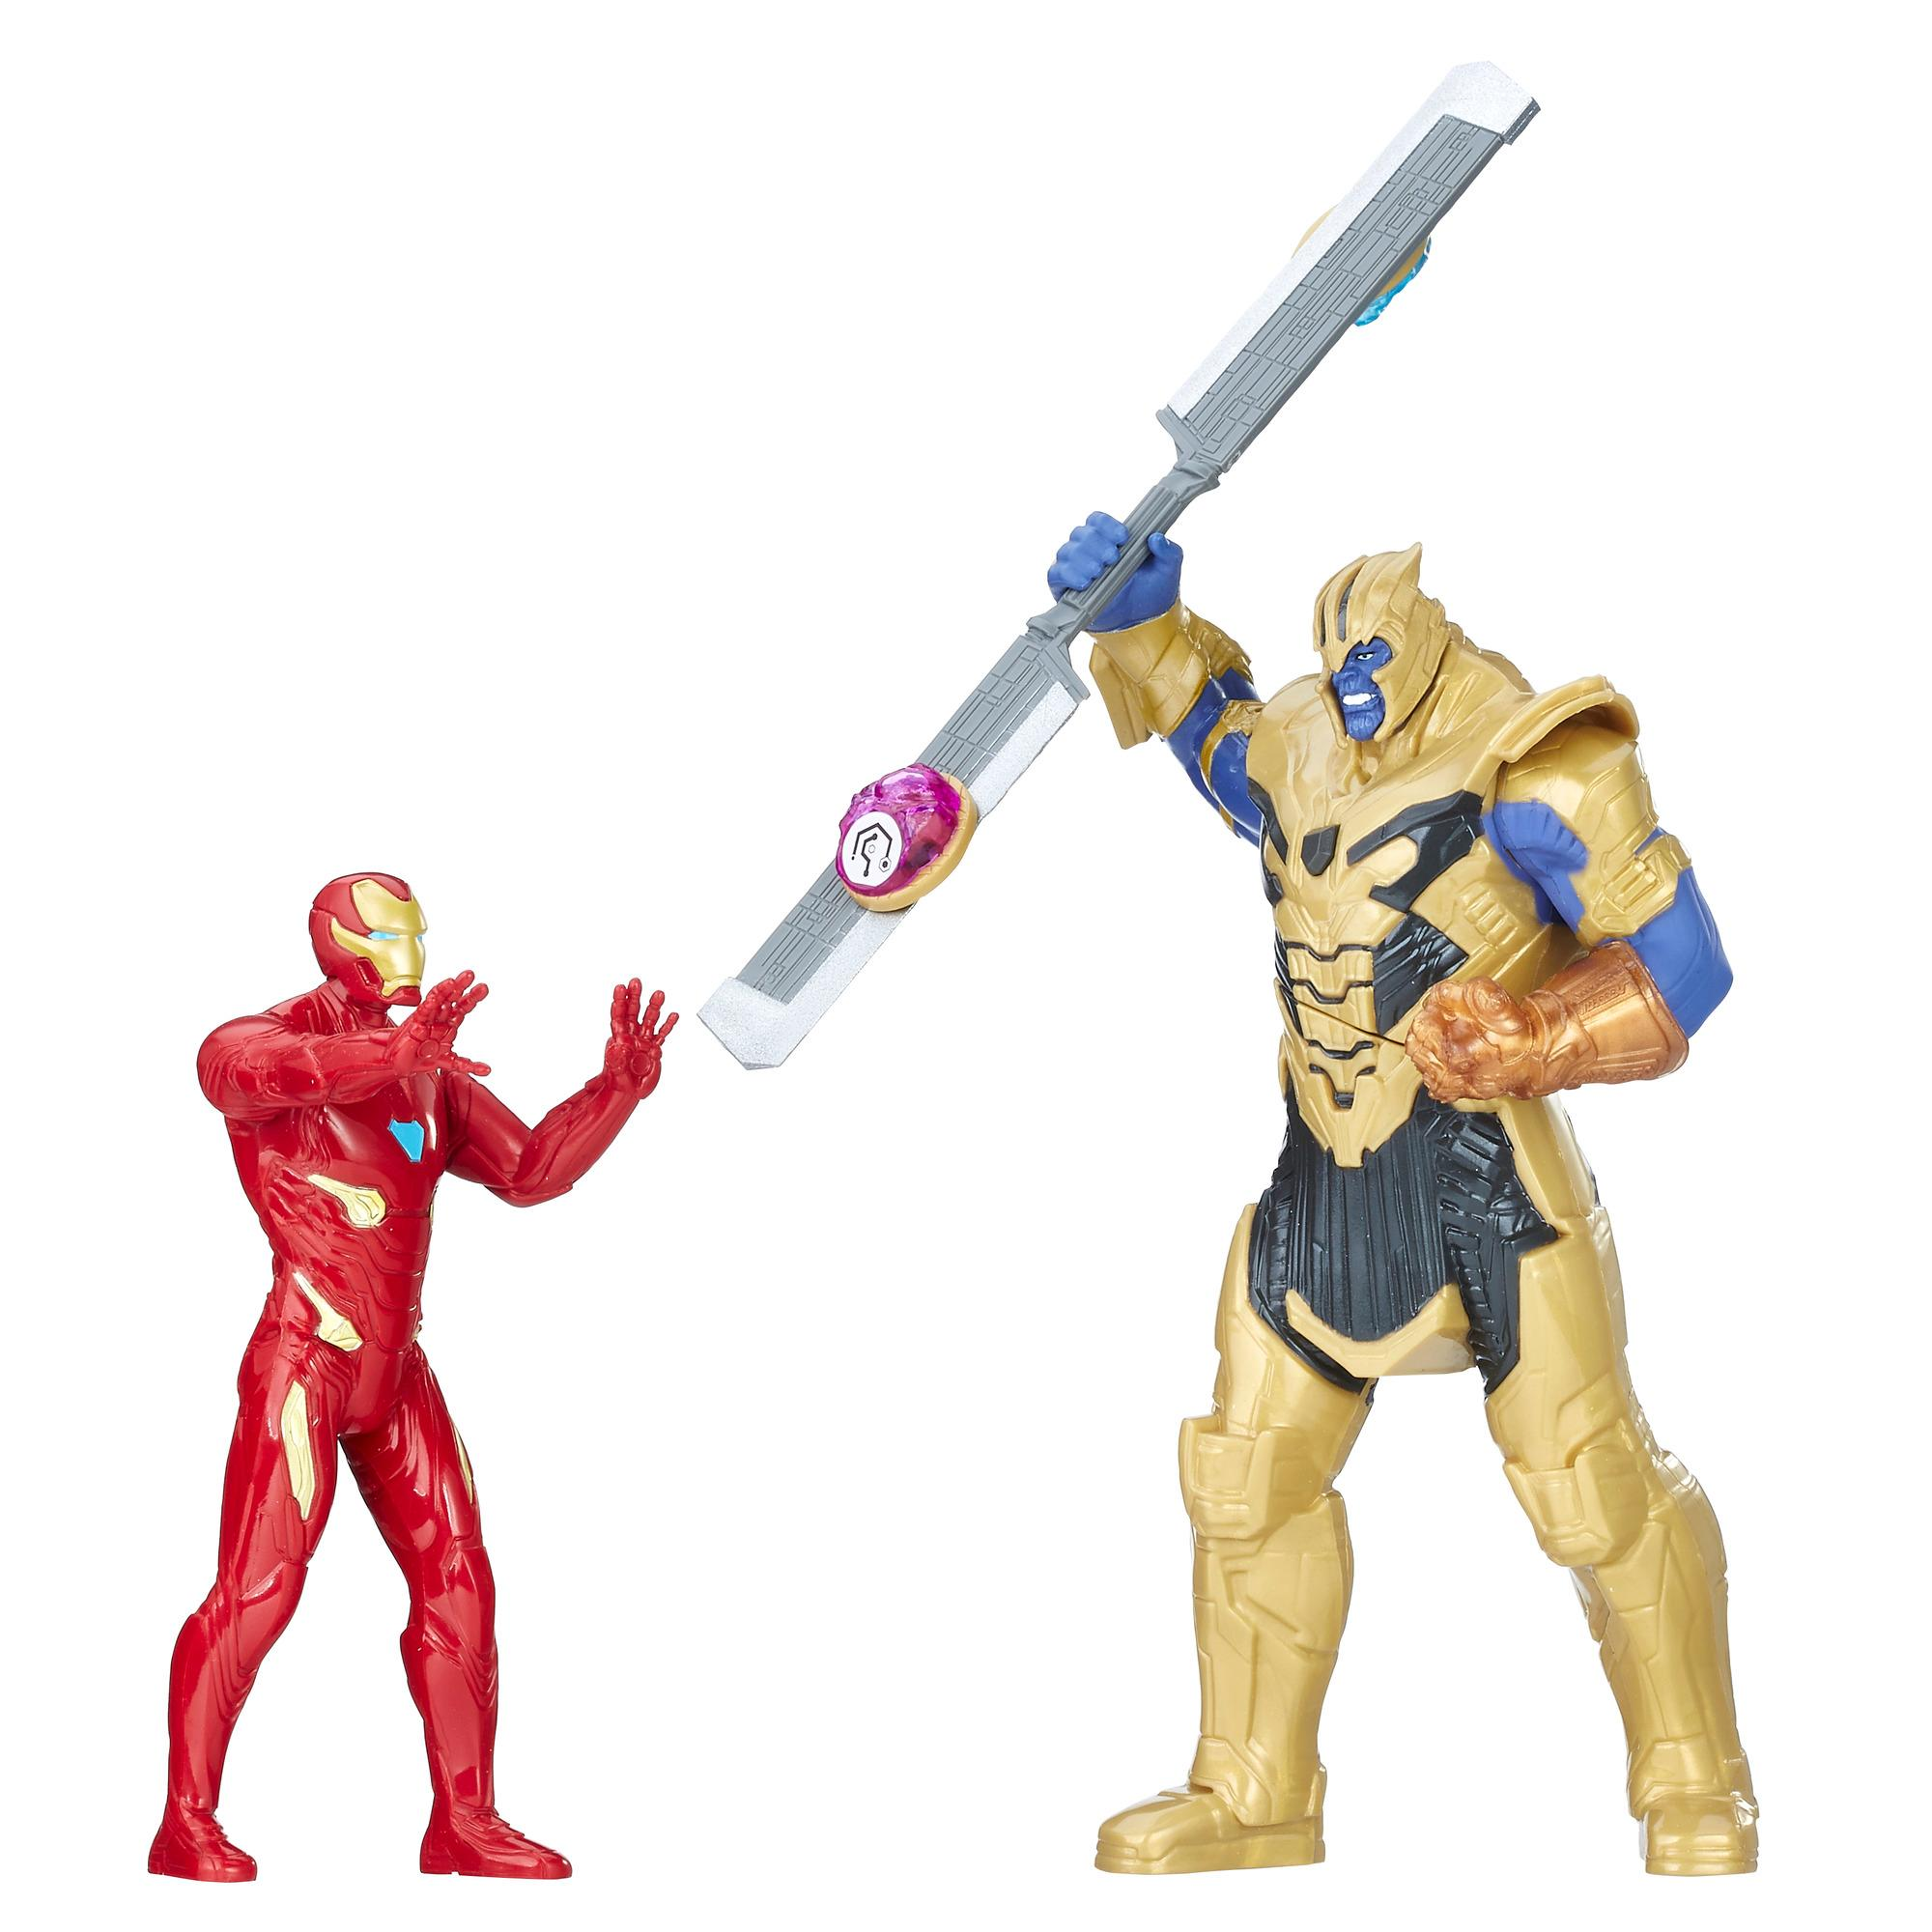 AVENGERS INFINITY WAR - THANOS VS IRON MAN BATTLE SET